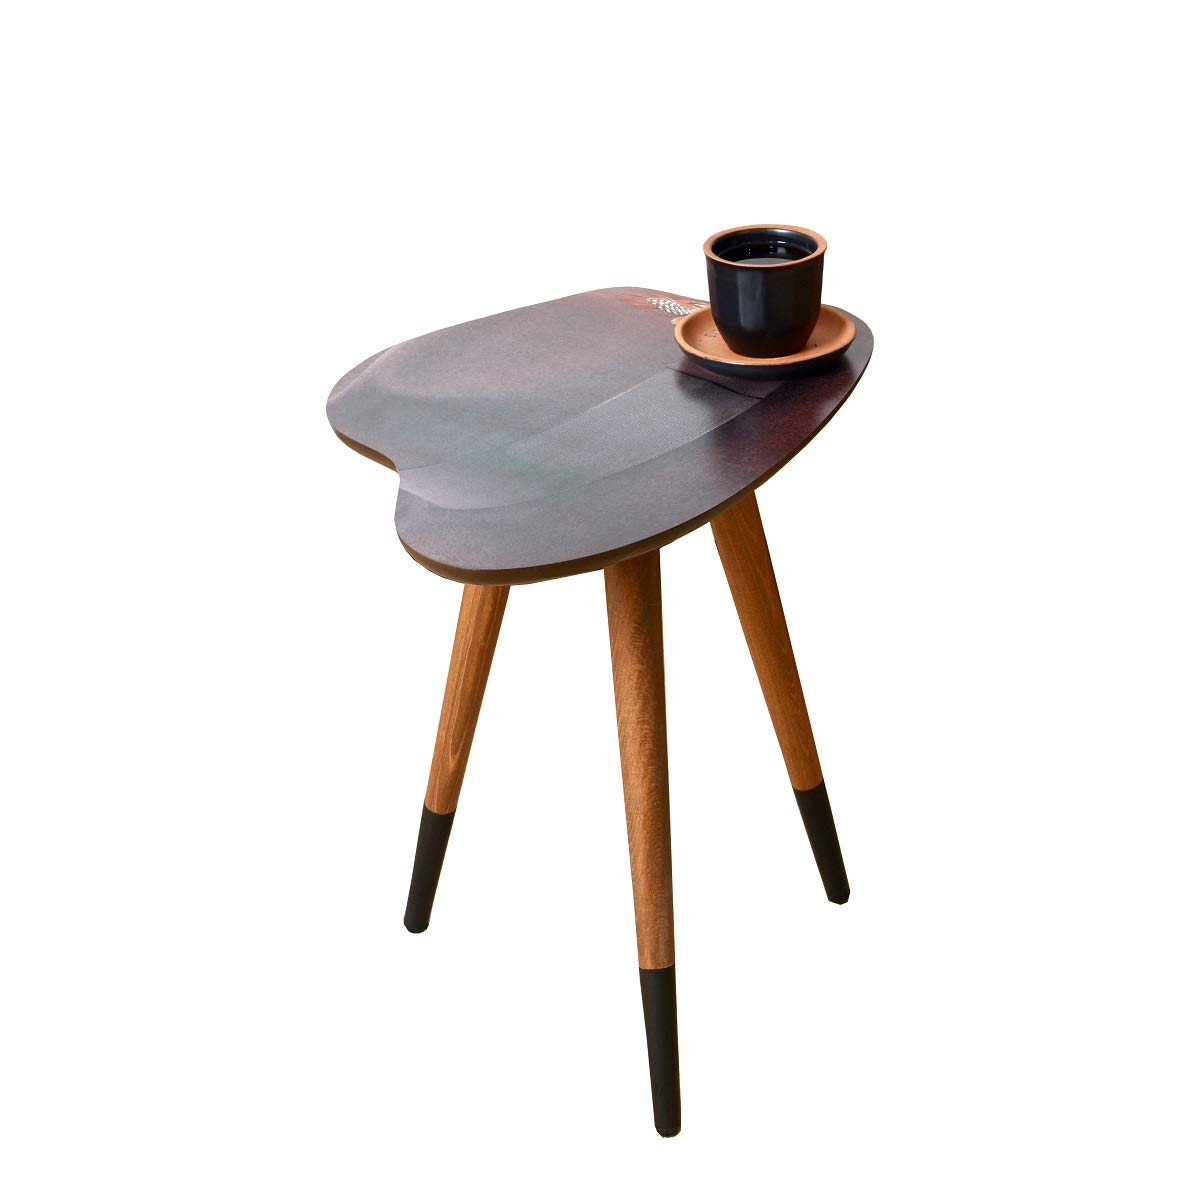 Casaculina Vintage Fedora Hat Design Side Table, Retro, Mid-Century Modern Design Wooden Coffee Table,End Table, Cocktail Table for Living Room, Bedroom by Casaculina